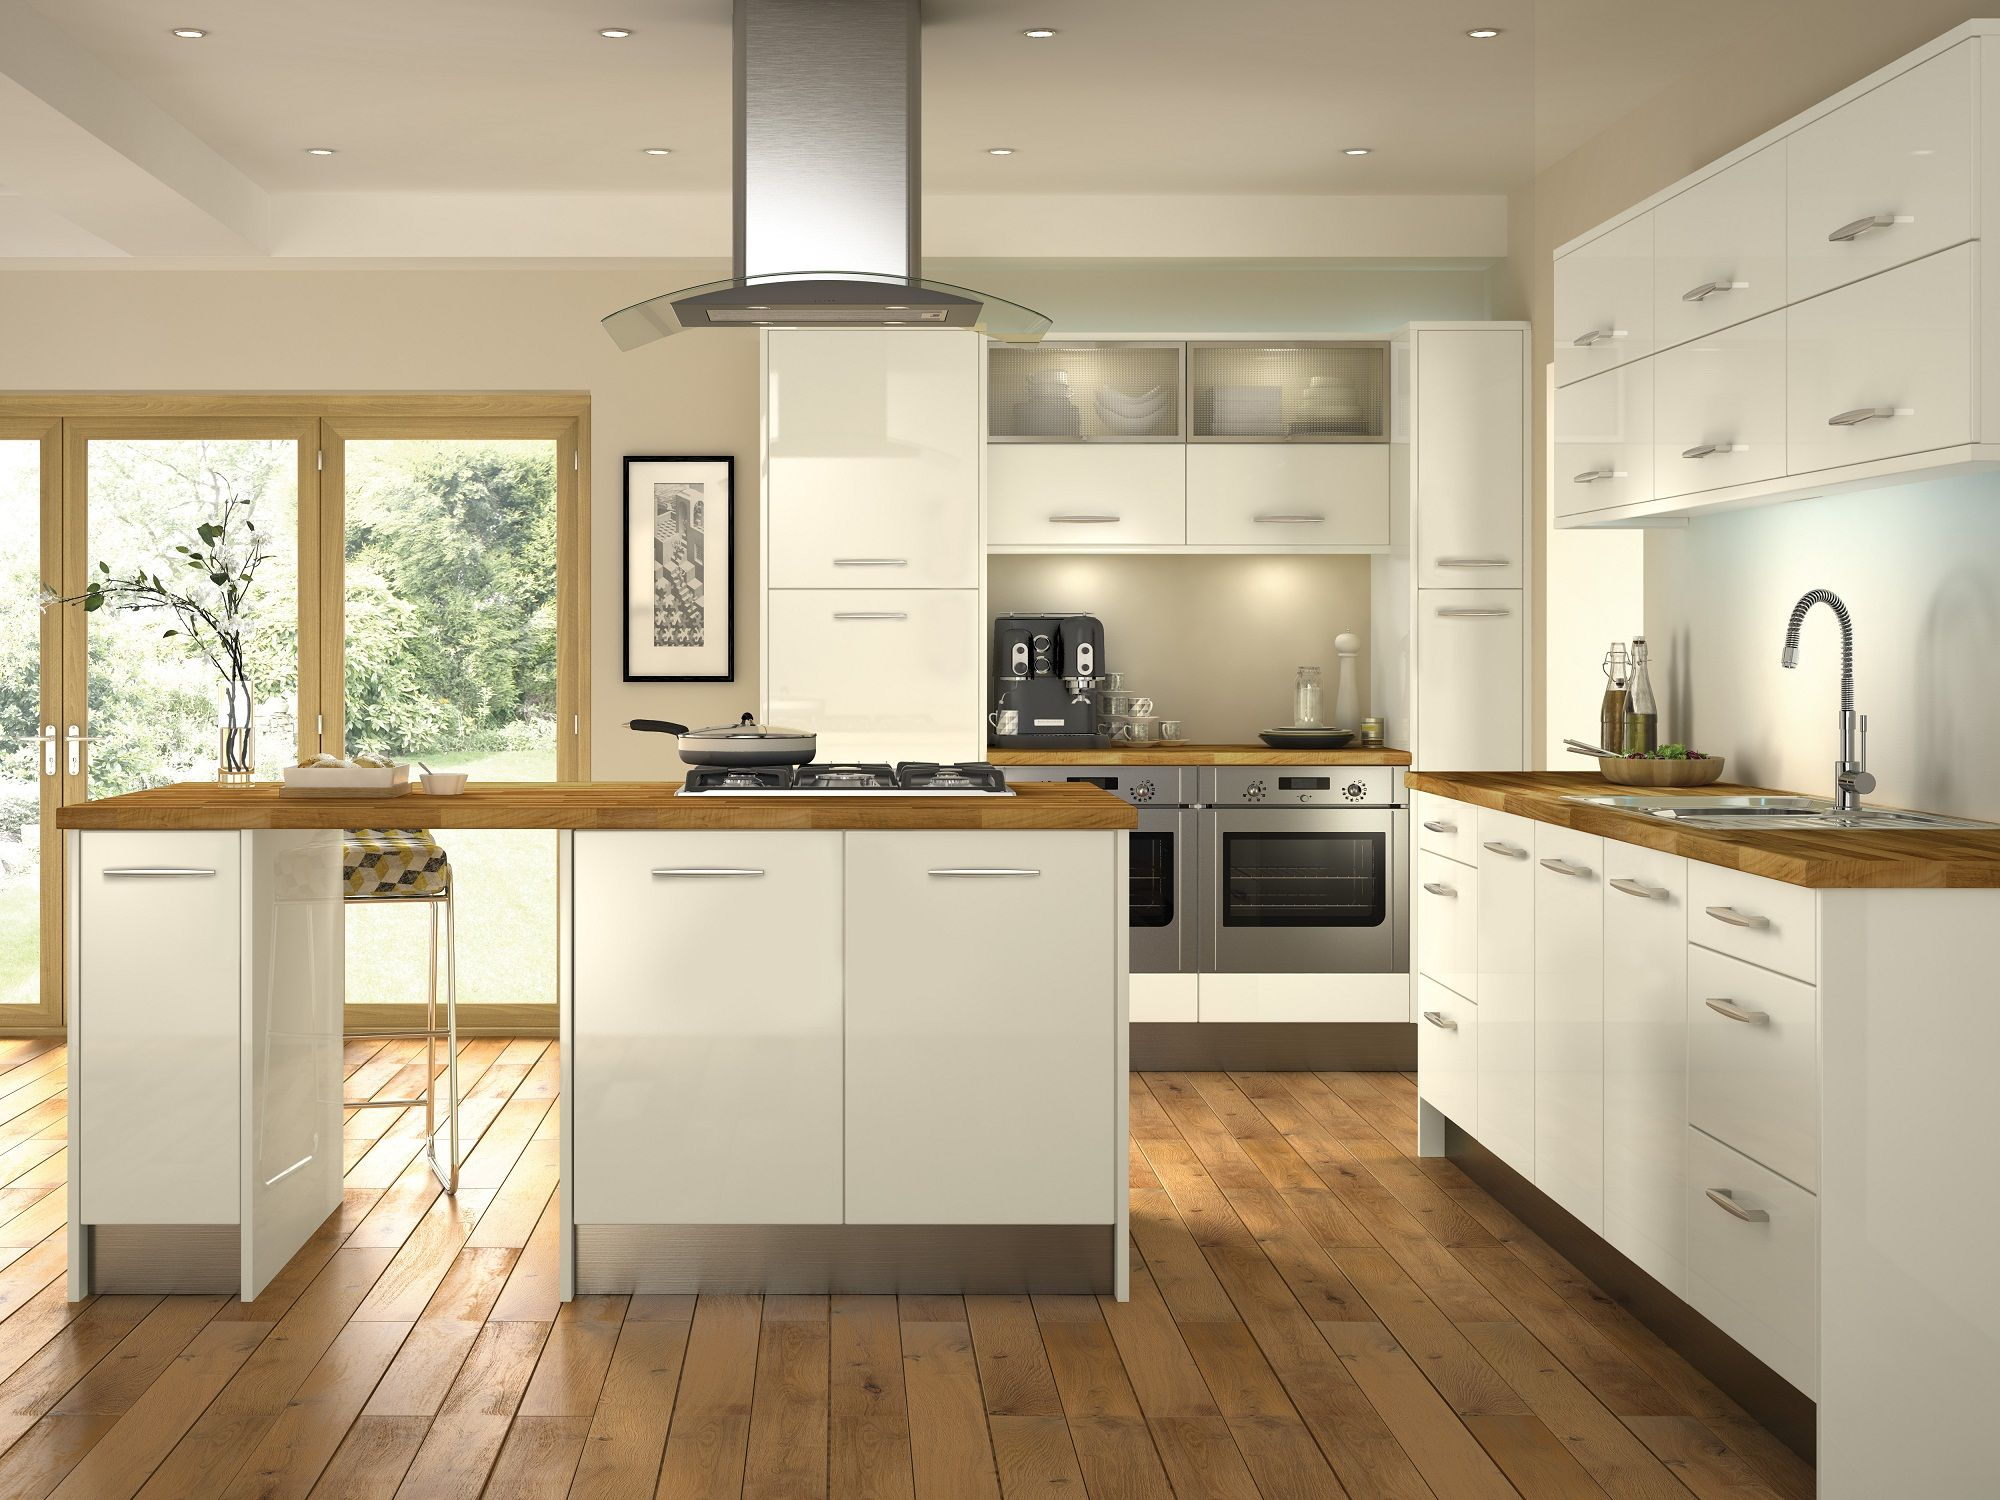 Minoco ivory this gloss kitchen door would make any kitchen feel contemporary http